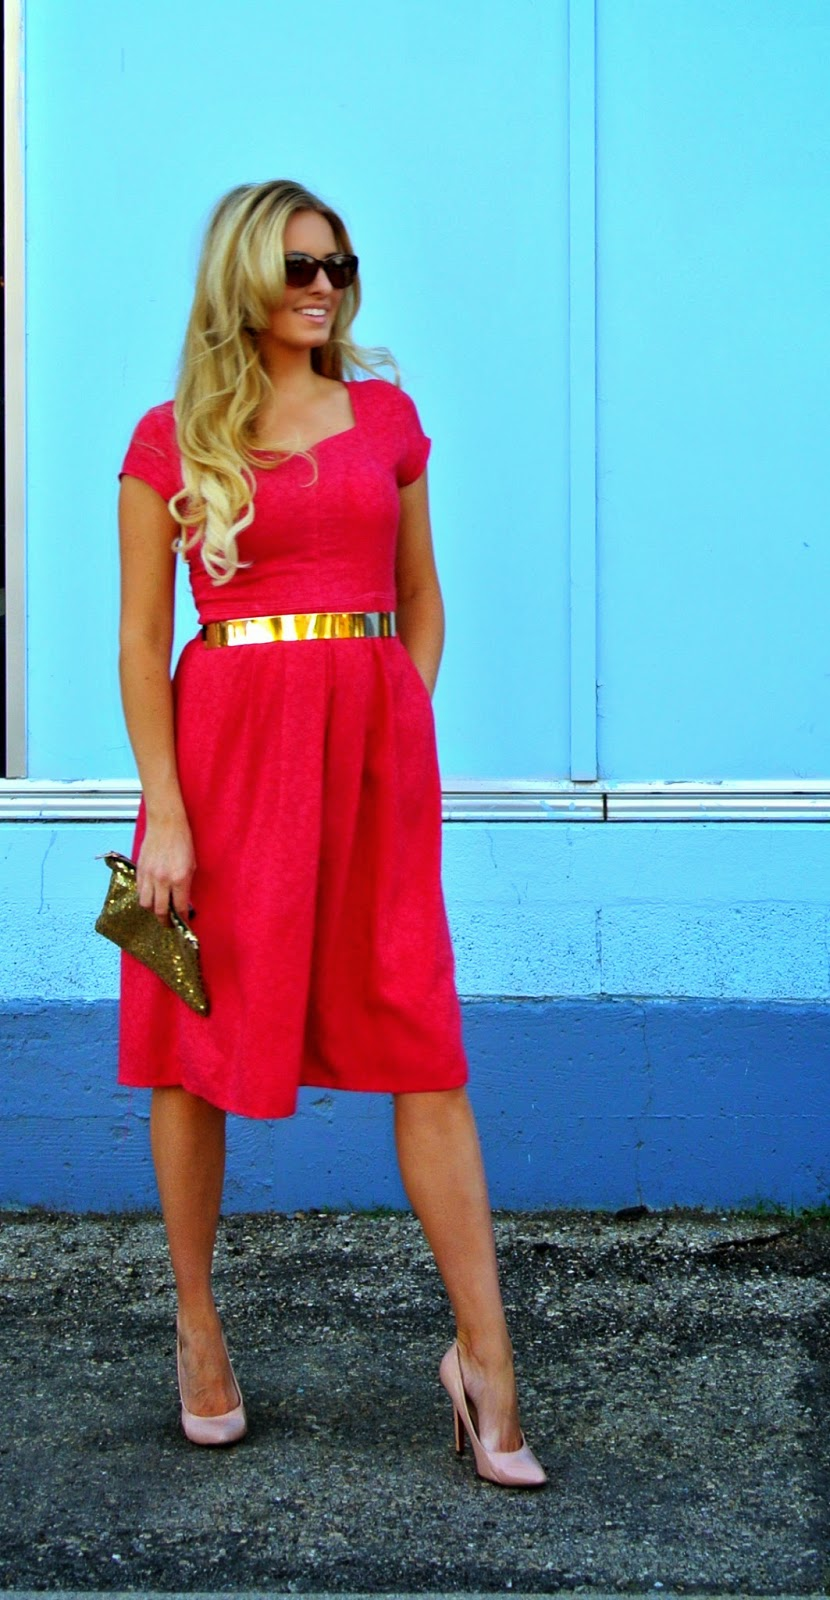 Blog about thrifting and refashioning.  Her entire outfit costs less than $30.Red dress with gold accessories. #tagsthrift